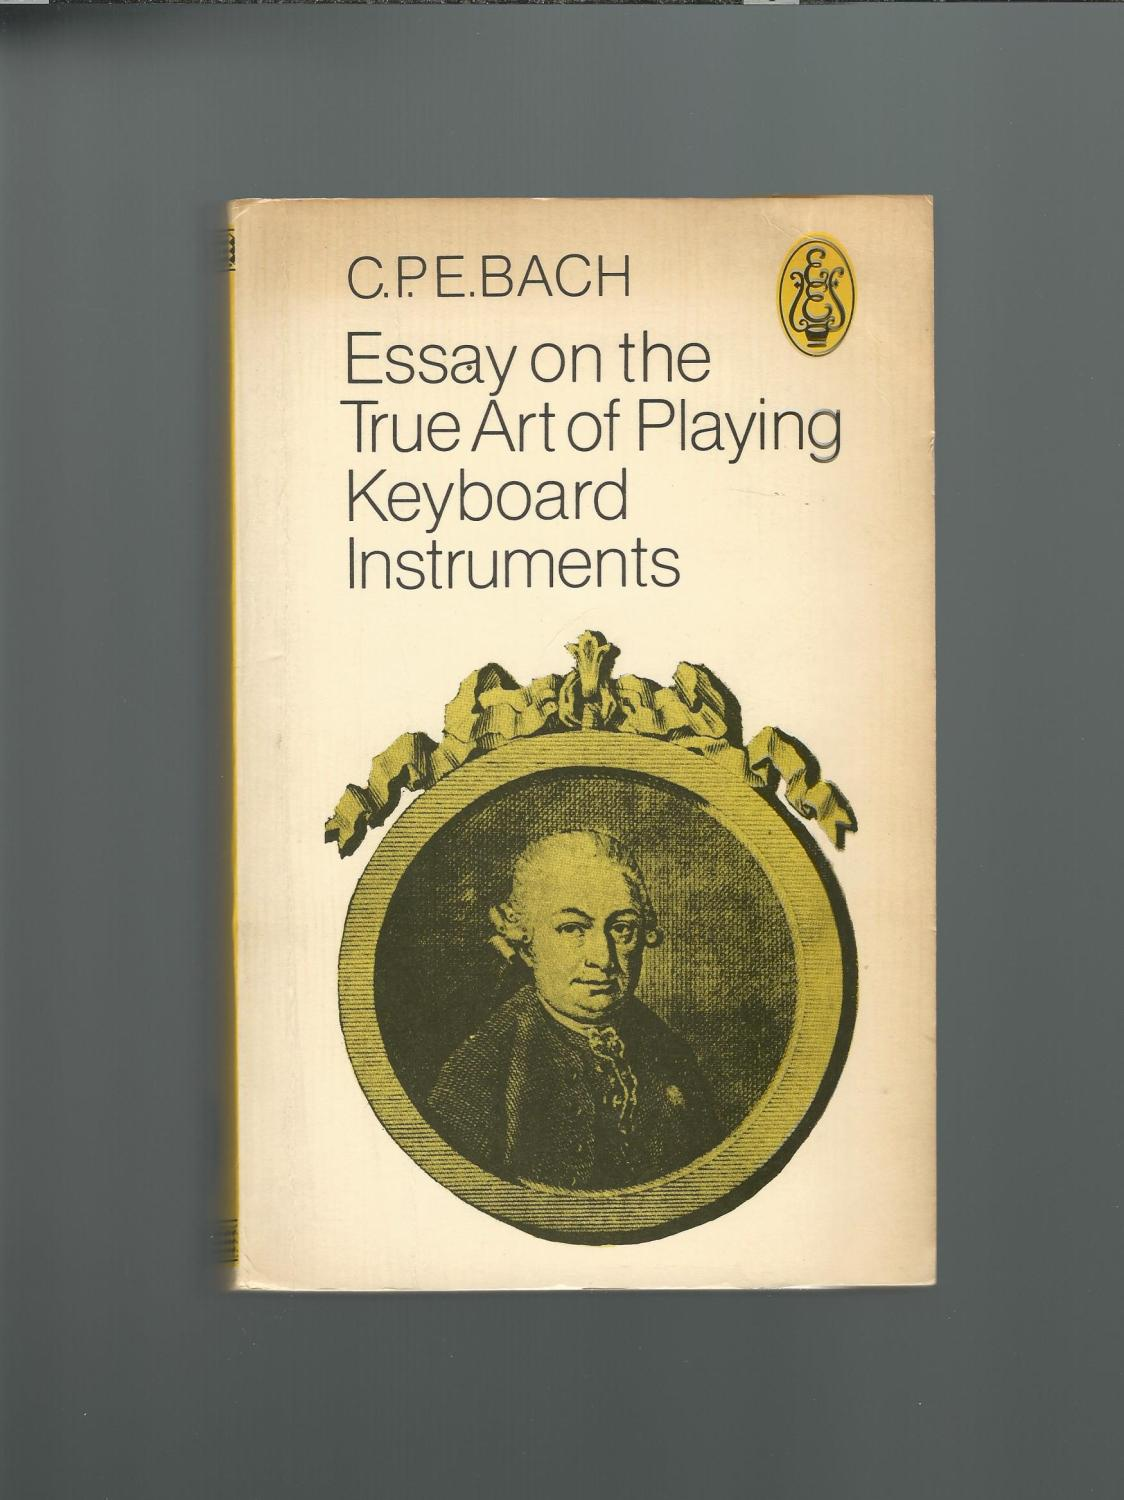 essay on the true art of keyboard playing Carl philipp emanuel bach (8 march 1714 - 14 december 1788), also formerly spelled karl philipp emmanuel bach, was a german classical period musician and composer, the fifth child and second (surviving) son of johann sebastian bach and maria barbara bach.